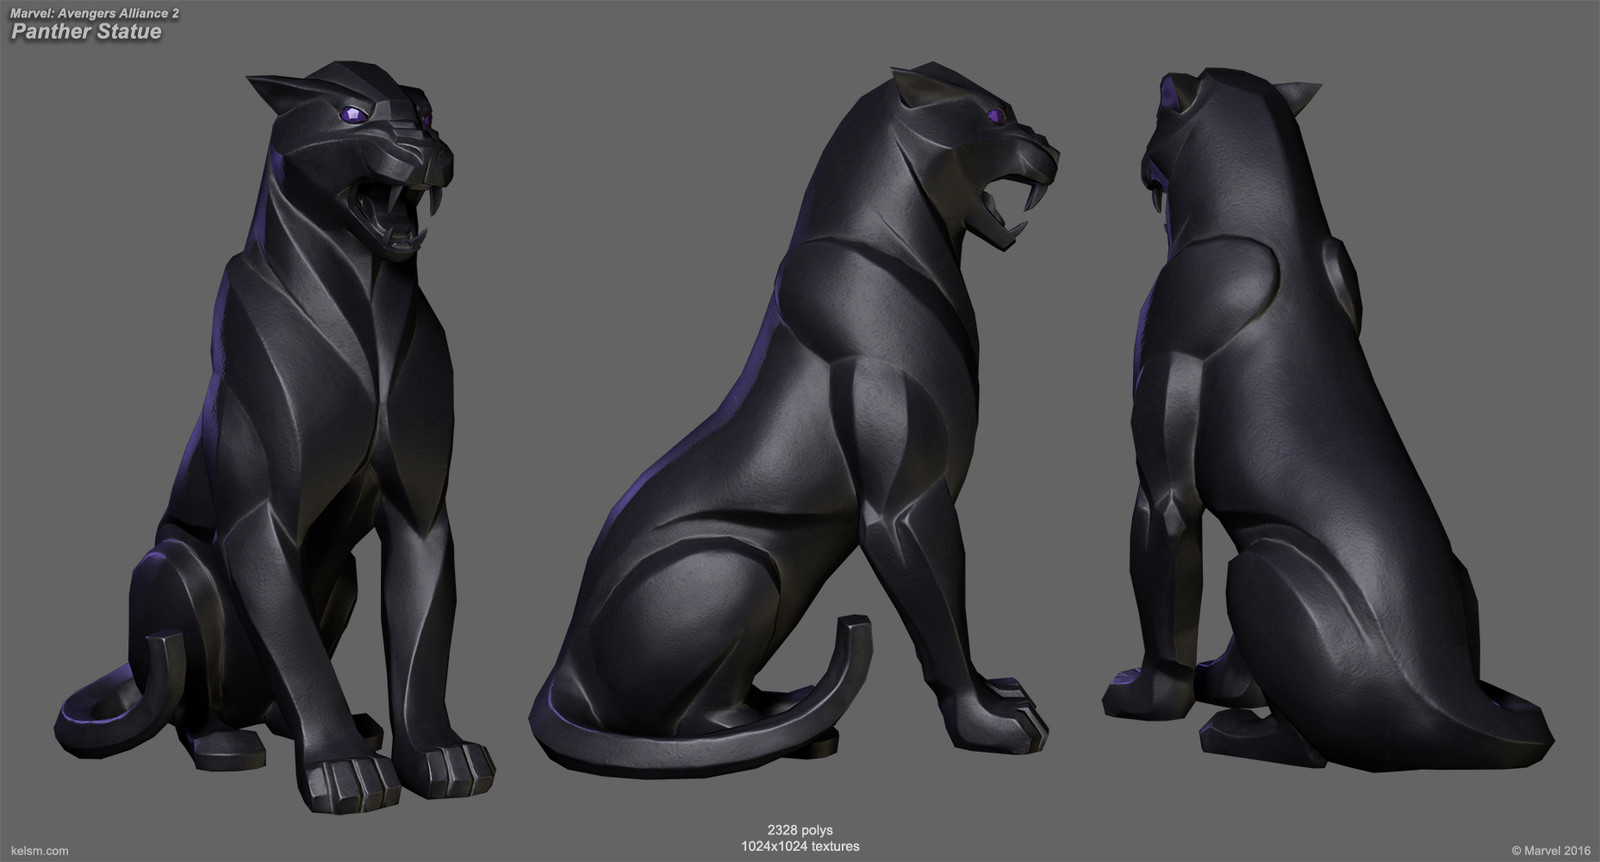 Marvel Avengers Alliance 2 - Black Panther Statues